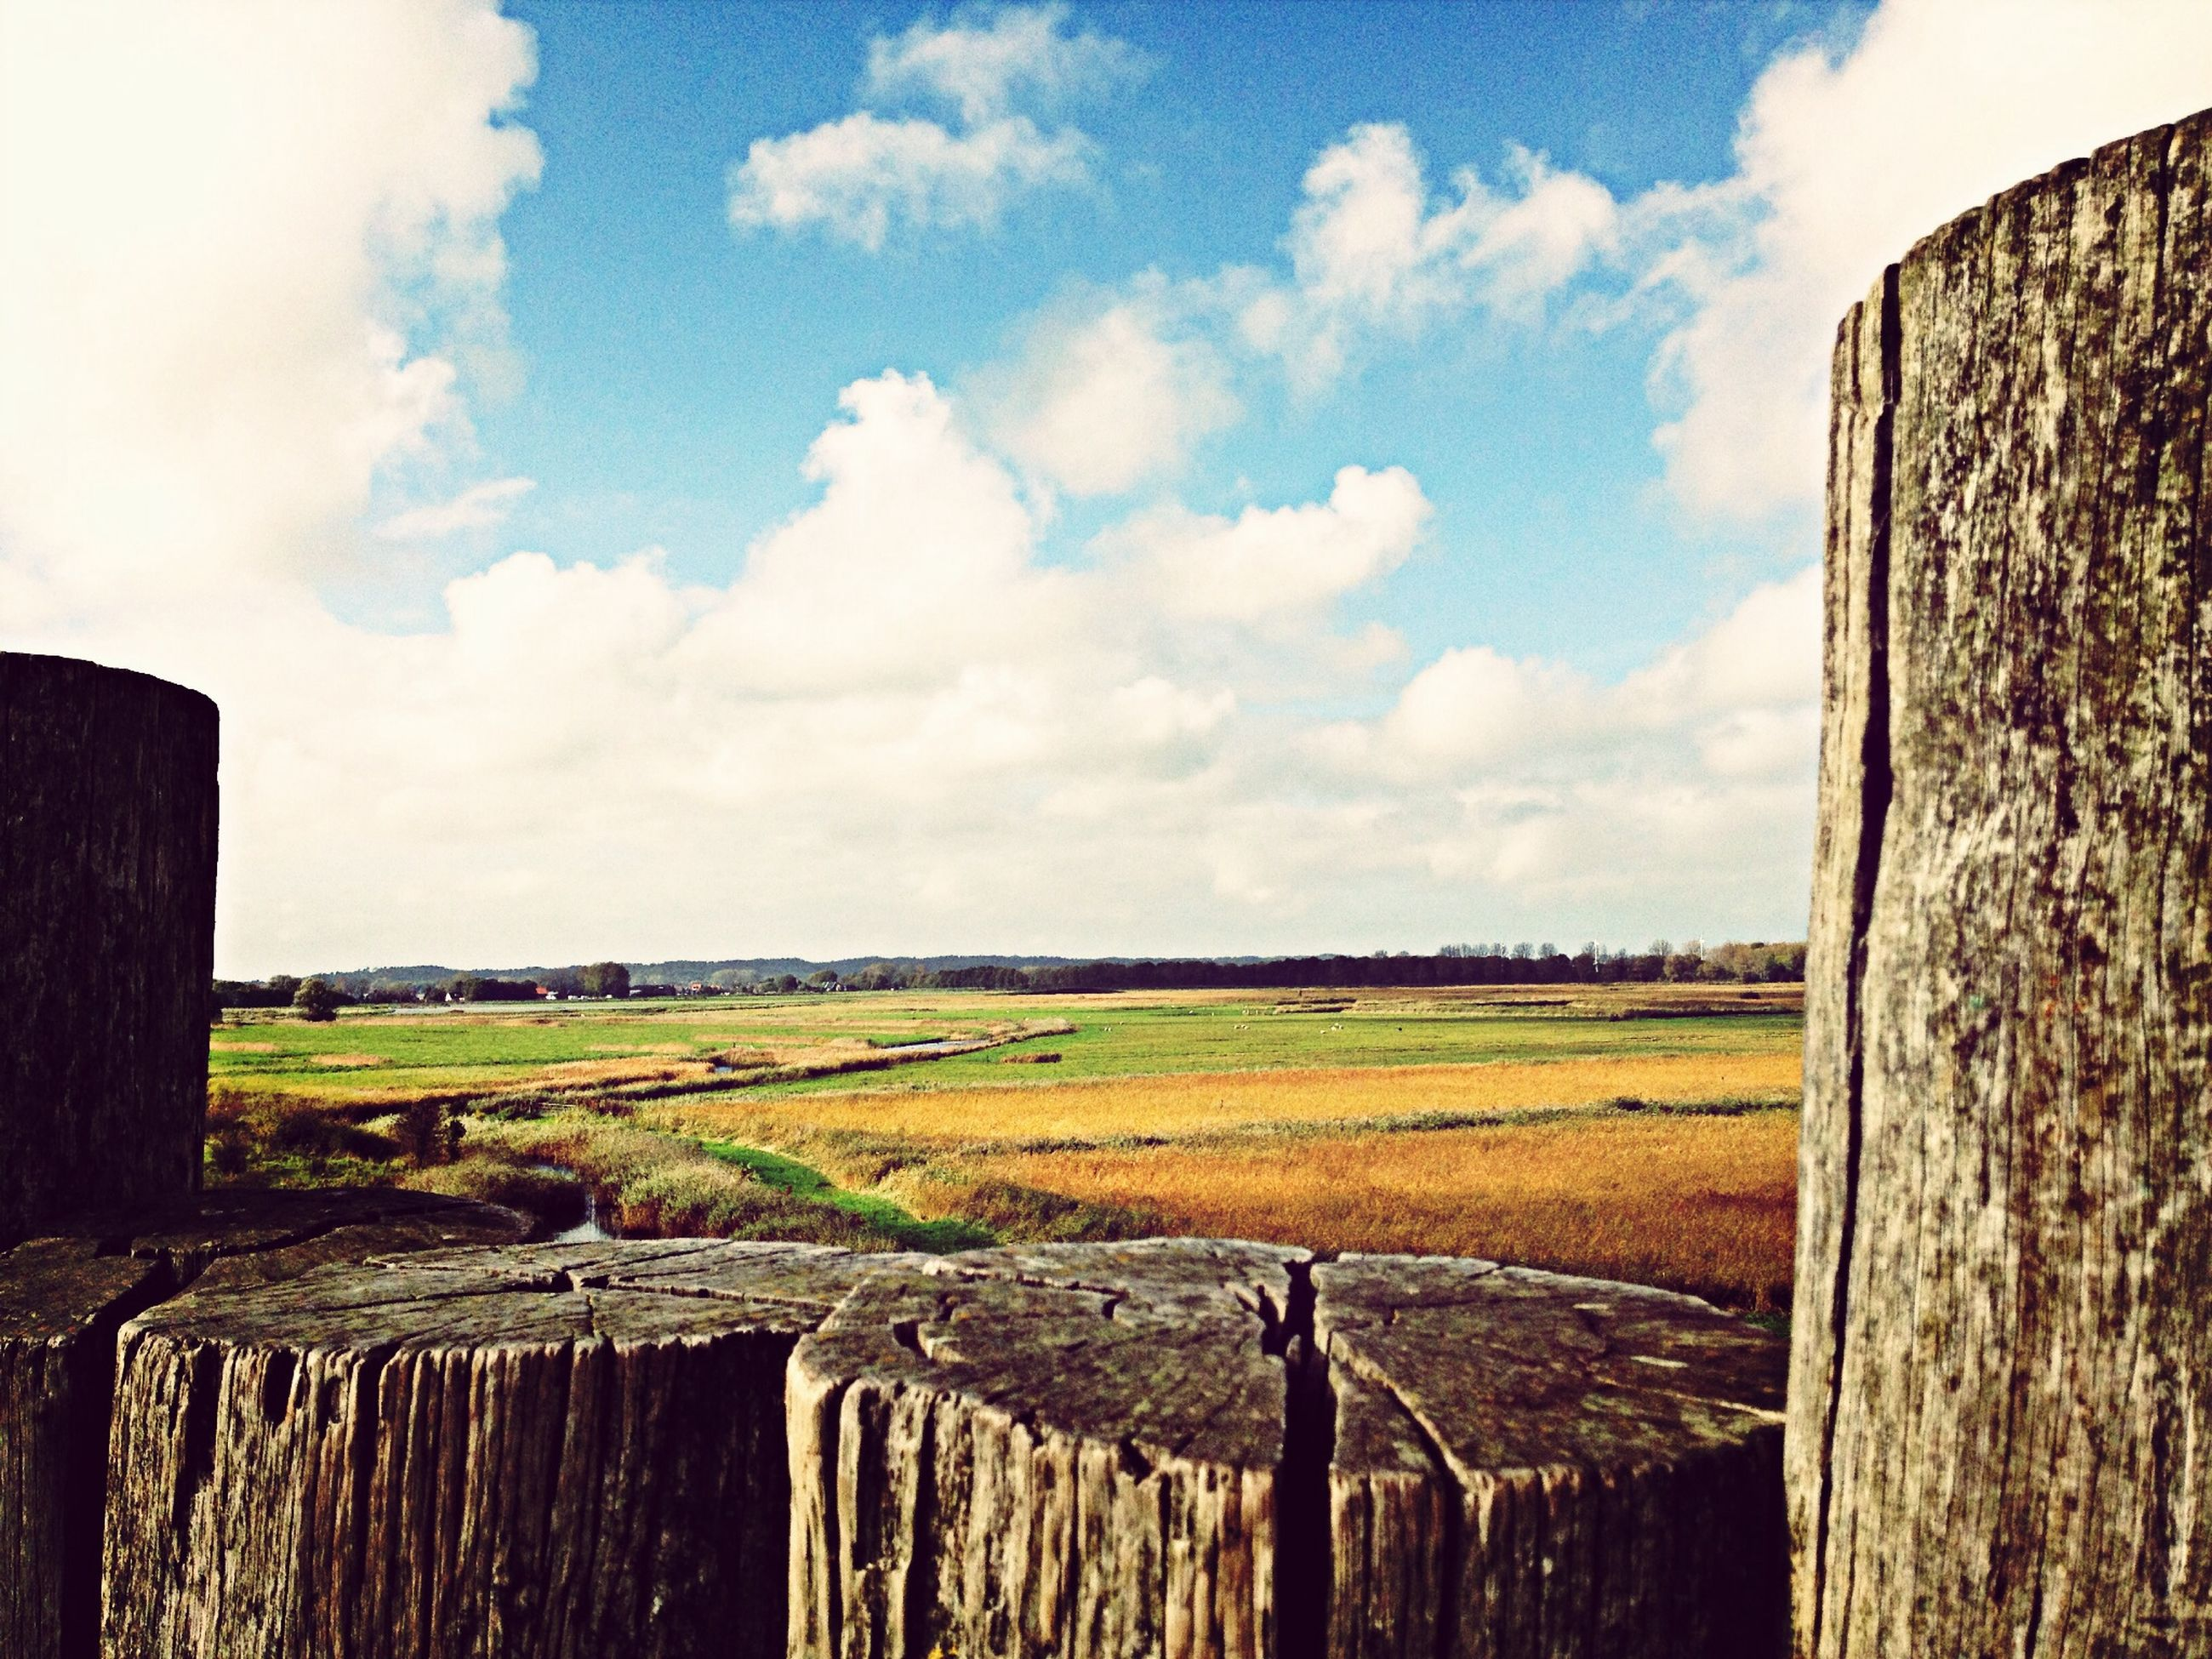 sky, cloud - sky, fence, grass, field, landscape, tranquility, cloud, tranquil scene, water, built structure, building exterior, scenics, wooden post, rural scene, nature, architecture, beauty in nature, day, cloudy